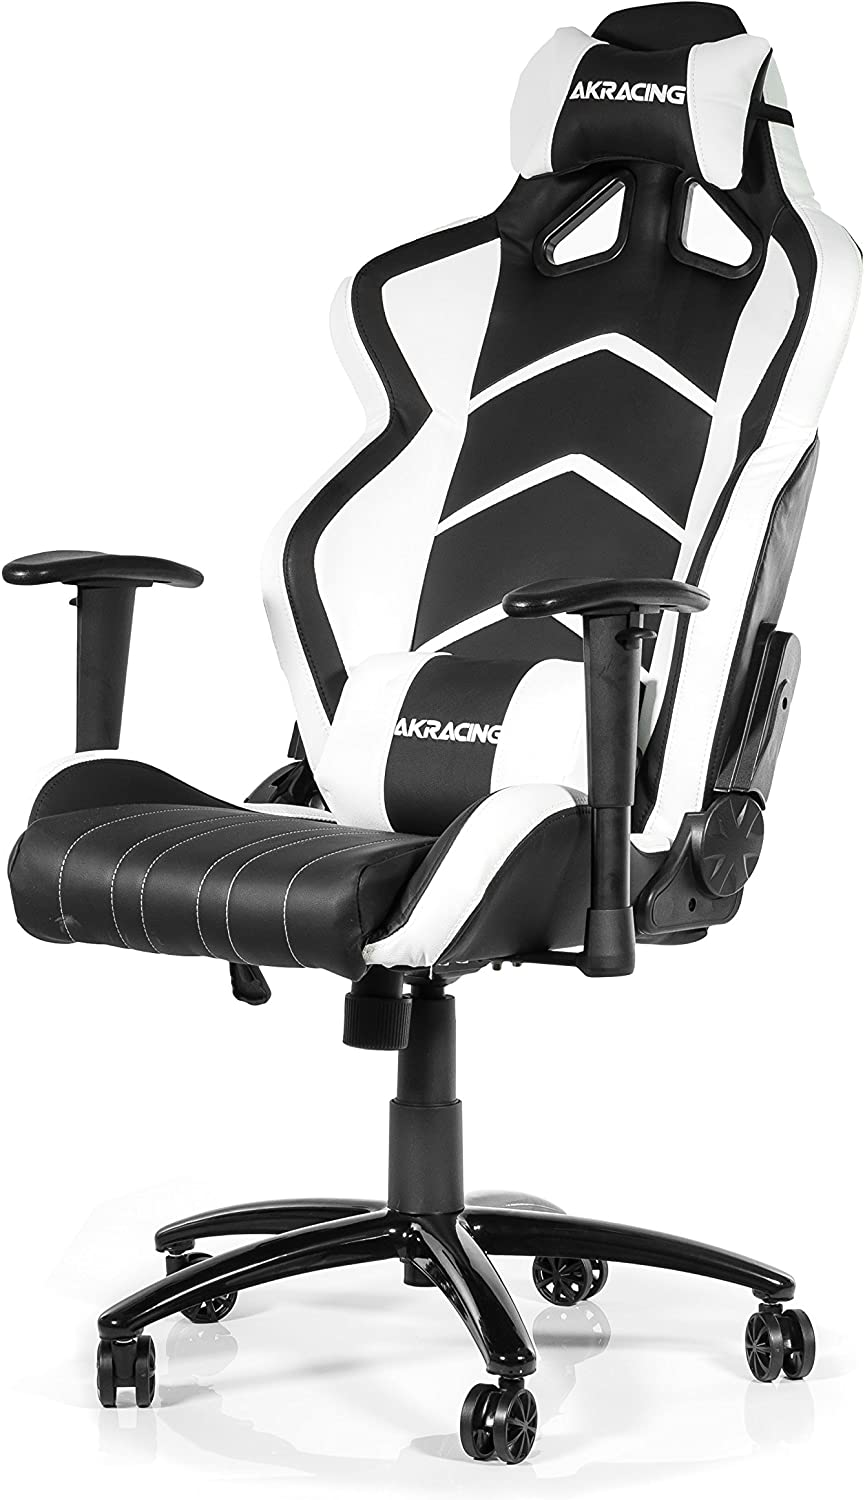 Rocker and Seat Height Adjustment Mechanisms PU Leather Tilt Swivel Recliner Green AKRacing Racing Style Desk Office Gaming Chair with High Backrest